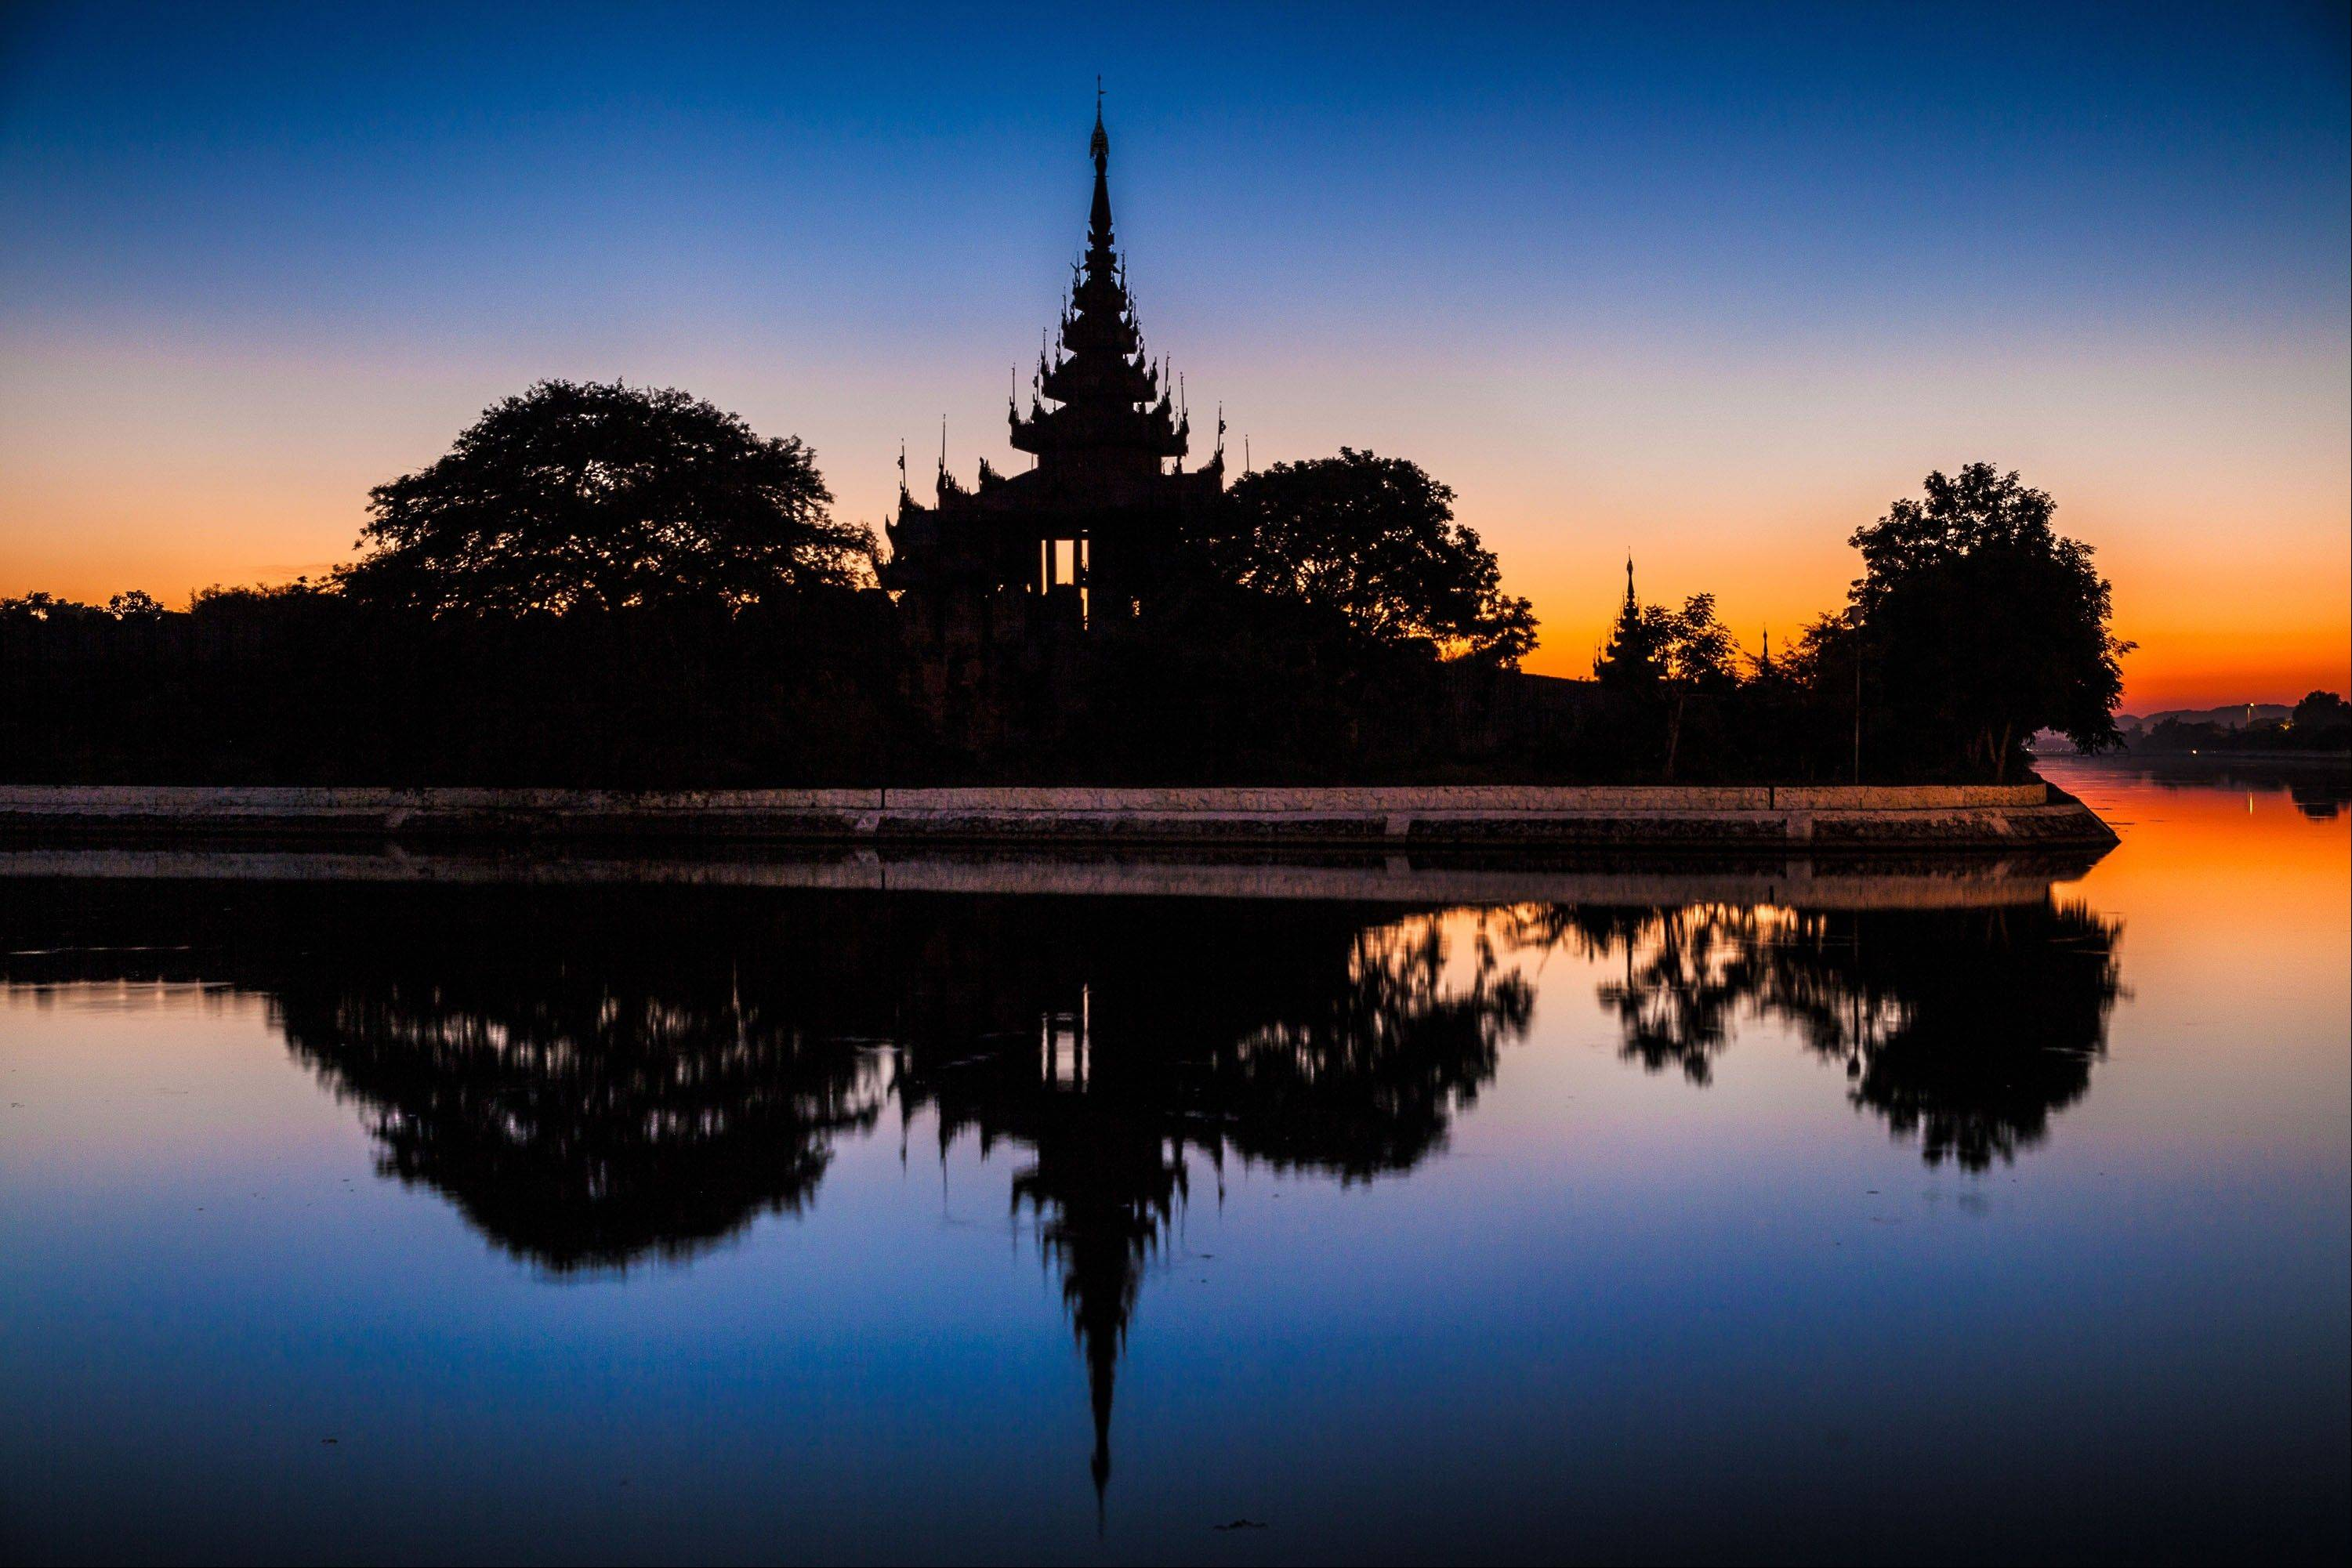 Mandalay Palace is reflected in a surrounding moat in Mandalay.